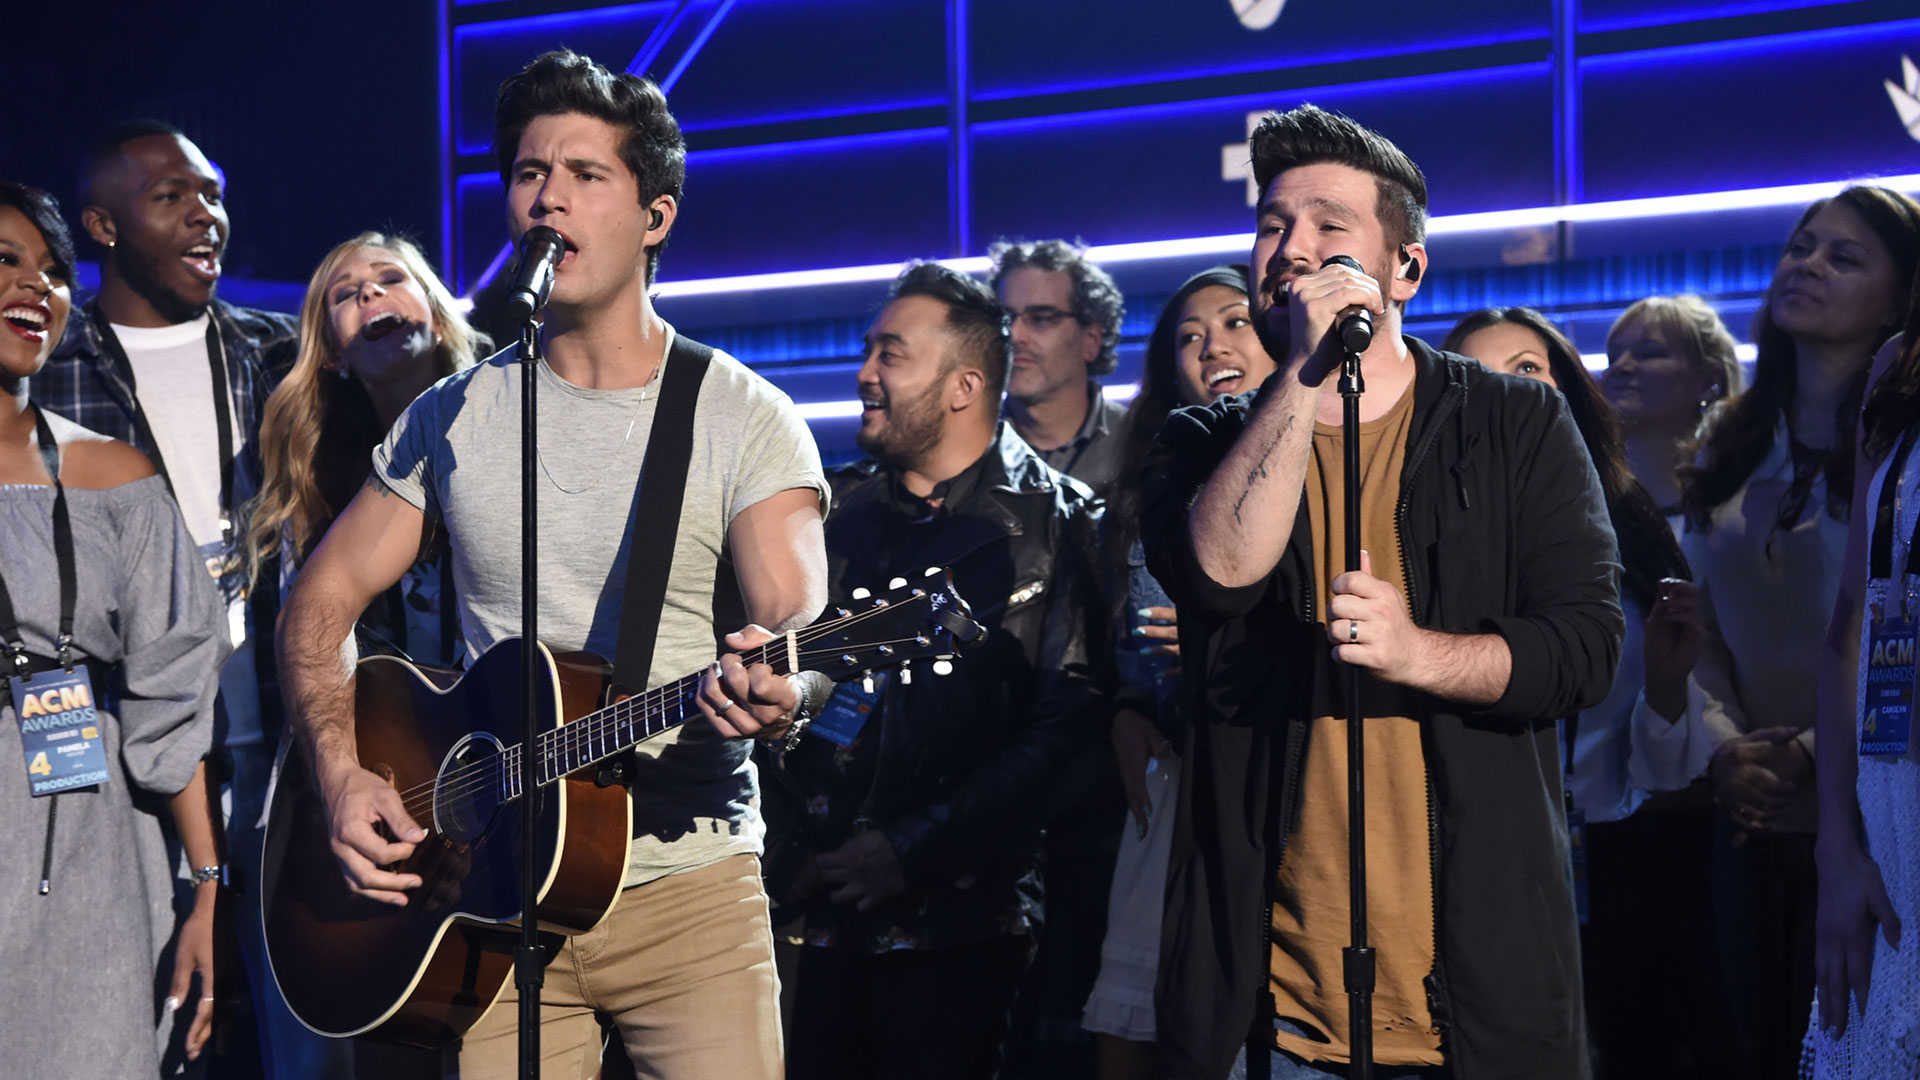 Dan + Shay are the life of the party during their rehearsal for Sunday night's big show!